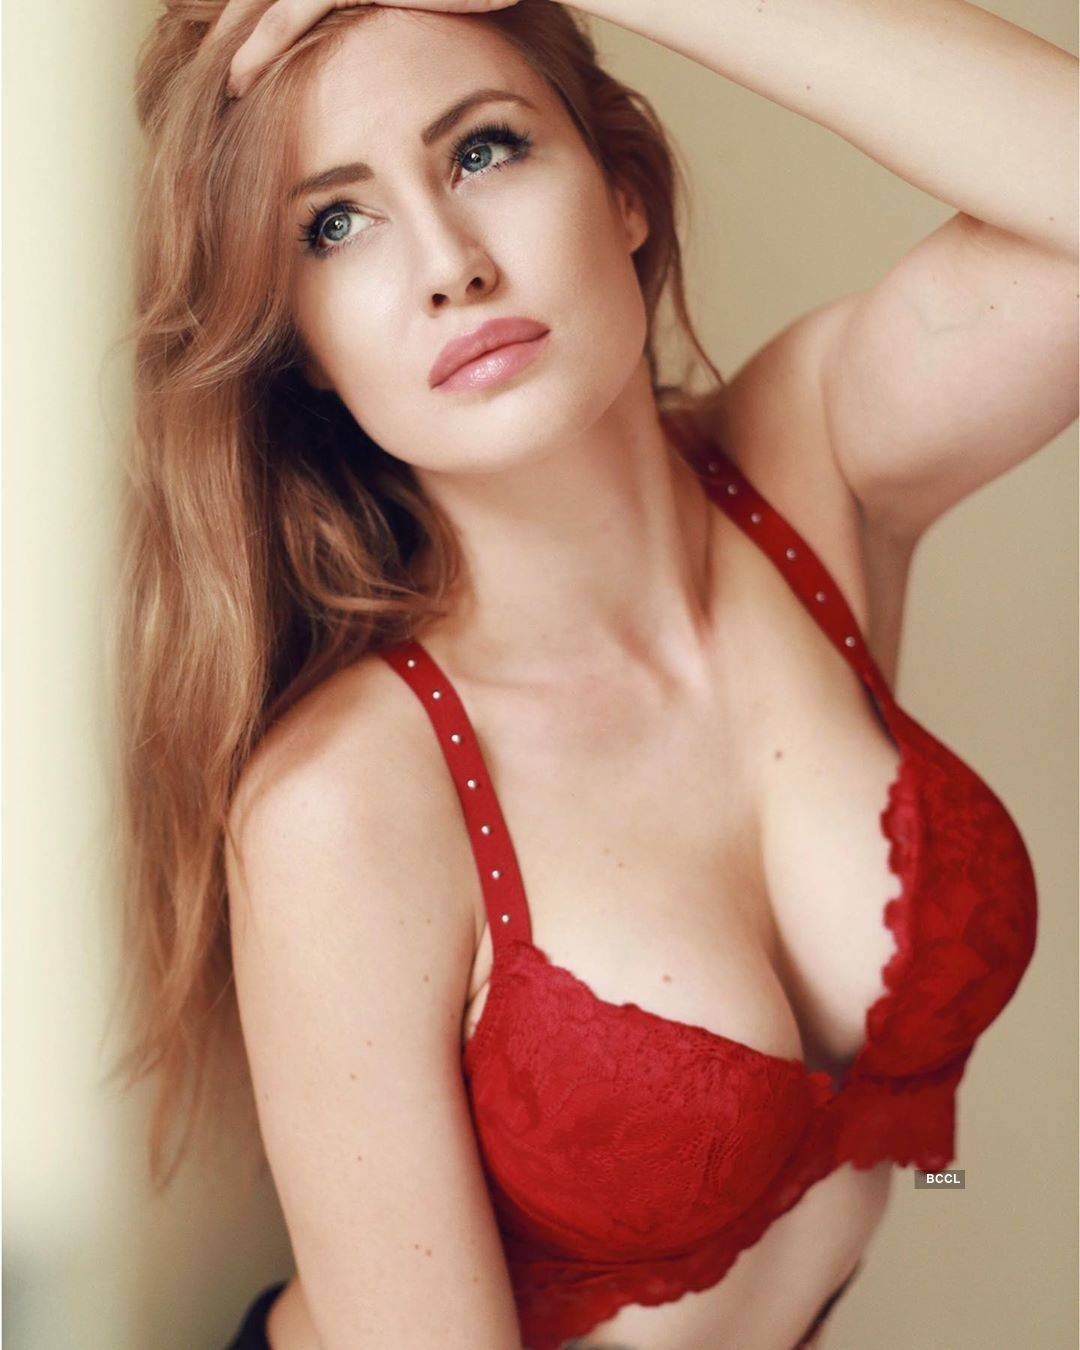 Pictures of the stunning Matylda, European model with an unmissable charm will steal your hearts